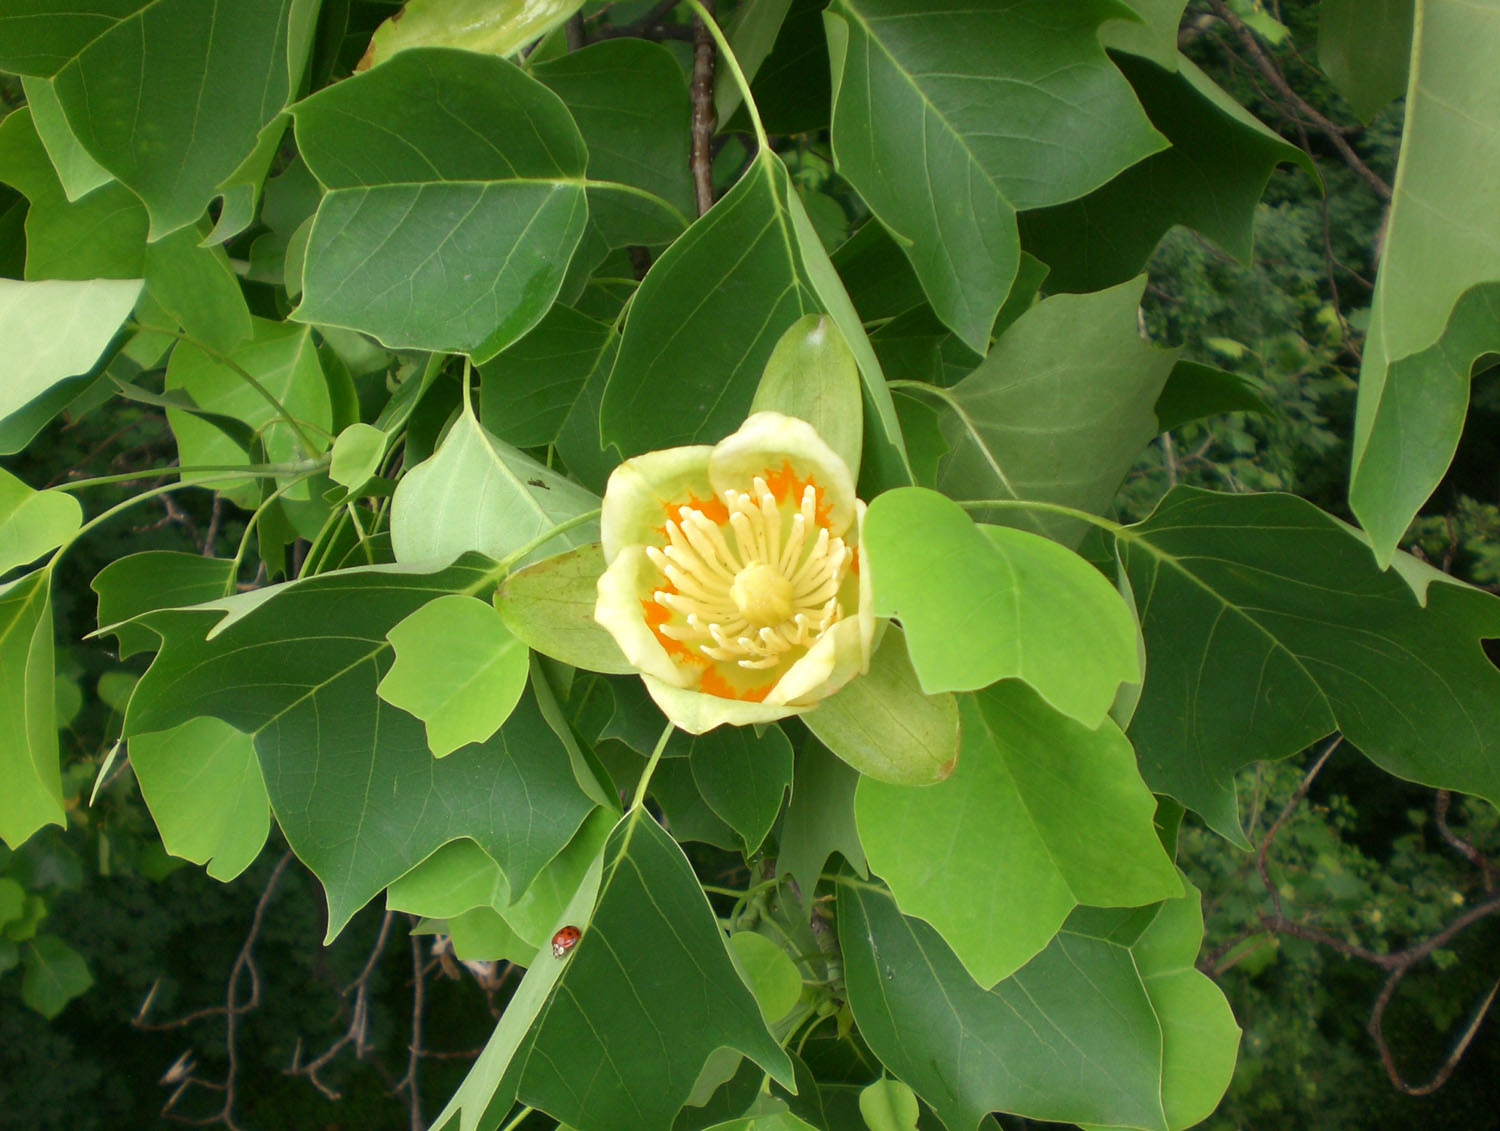 The Top Of A Tulip Tree